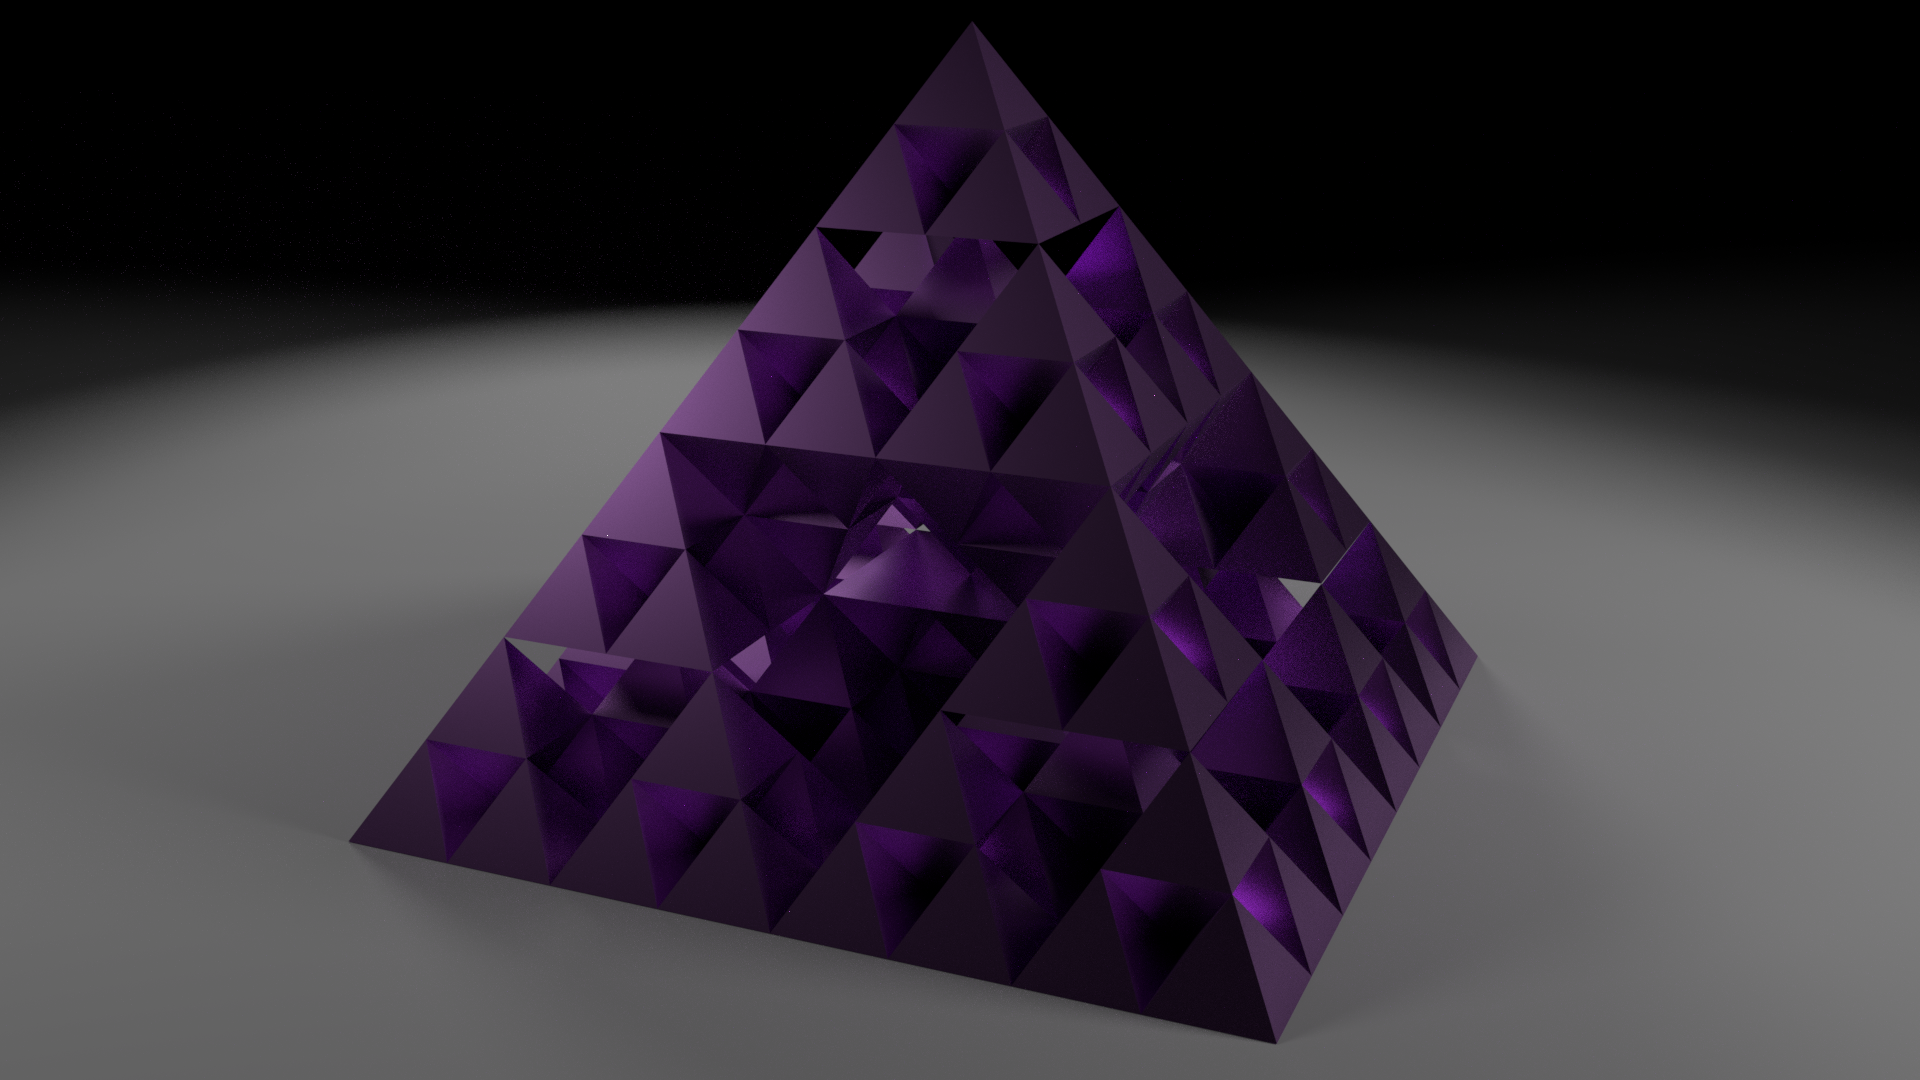 pyramid of purple or smthn